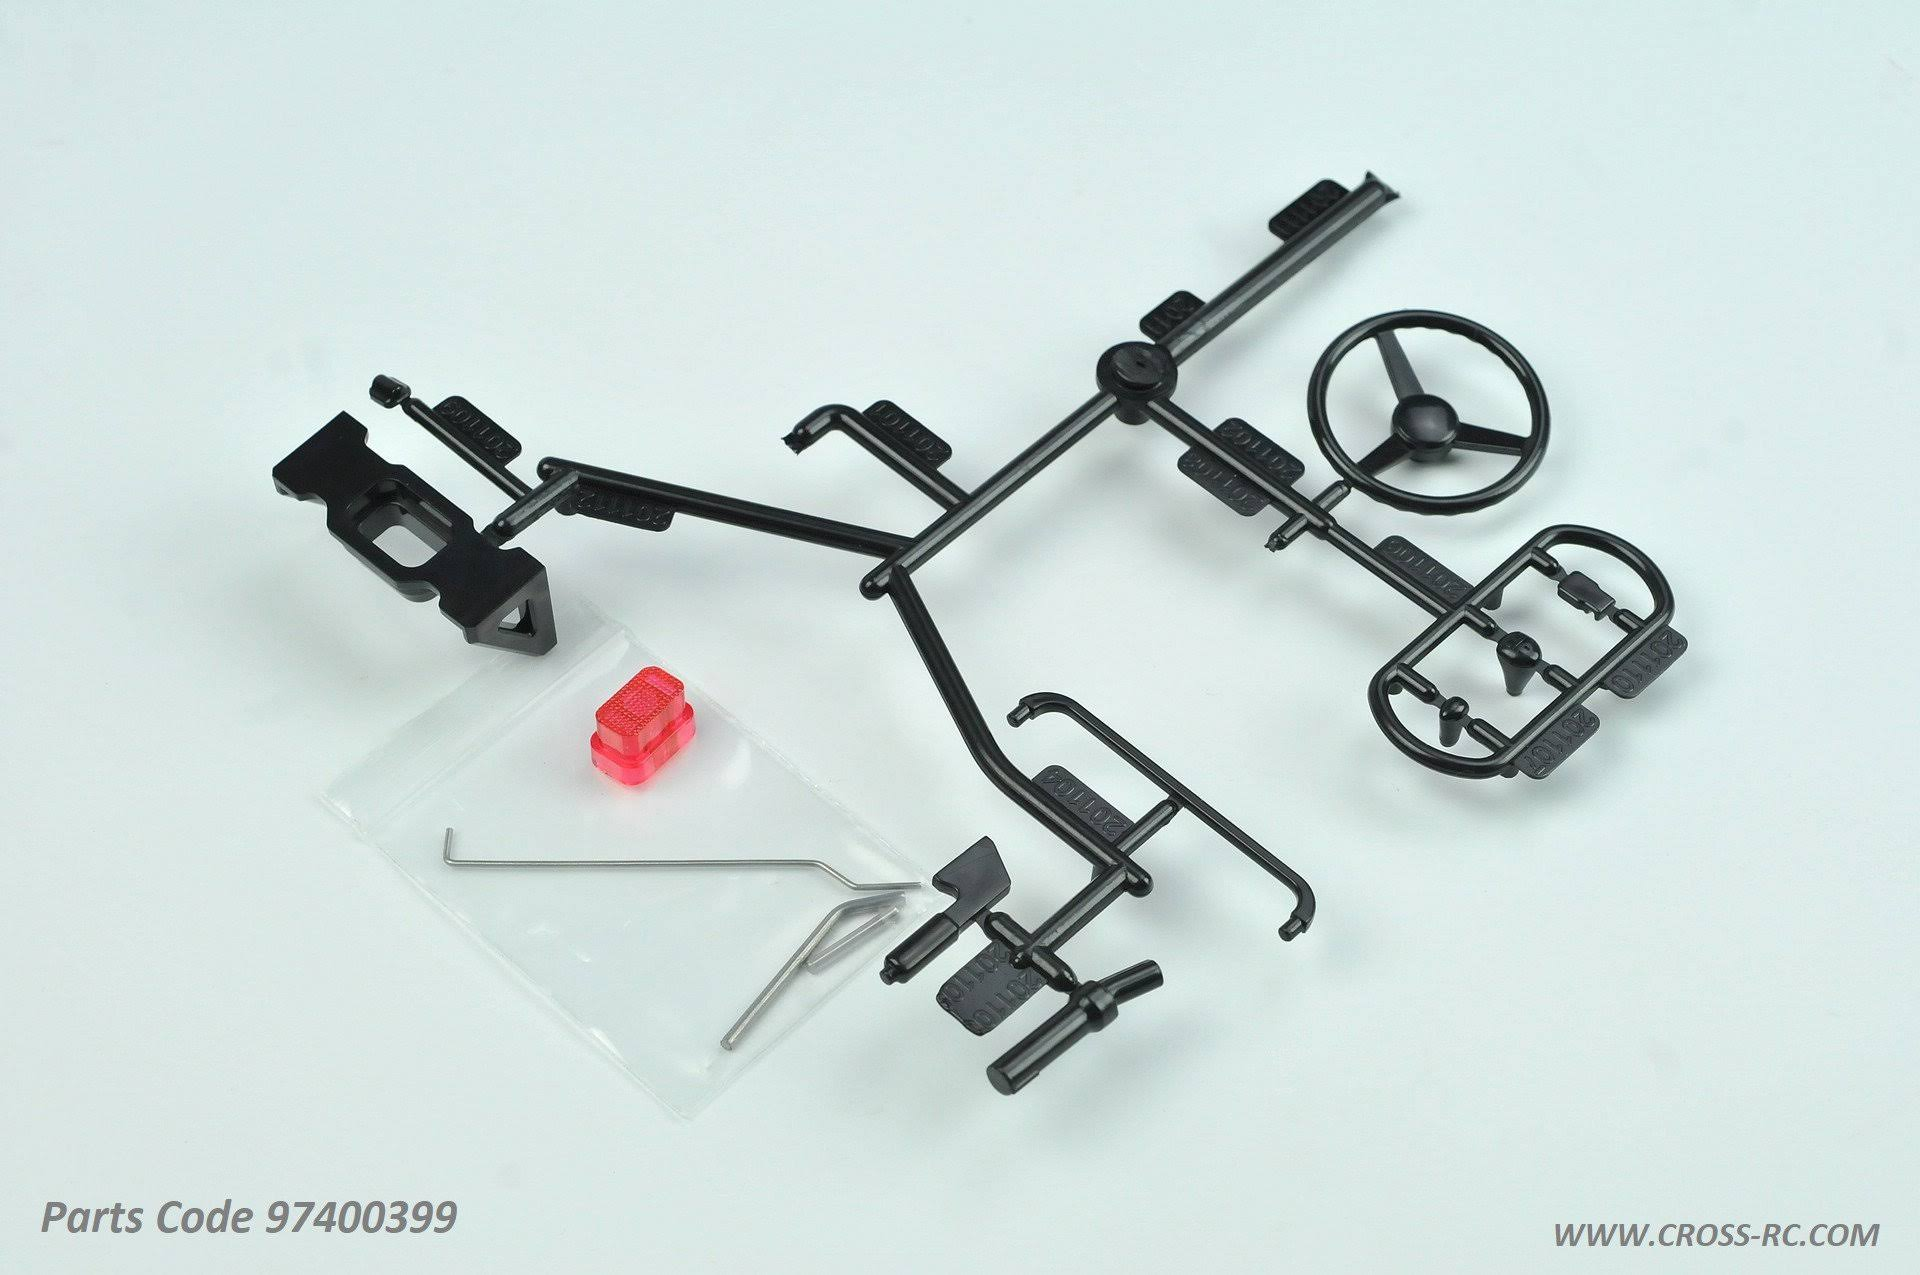 Cross RC CZR97400399 SG4 Scale Parts Set